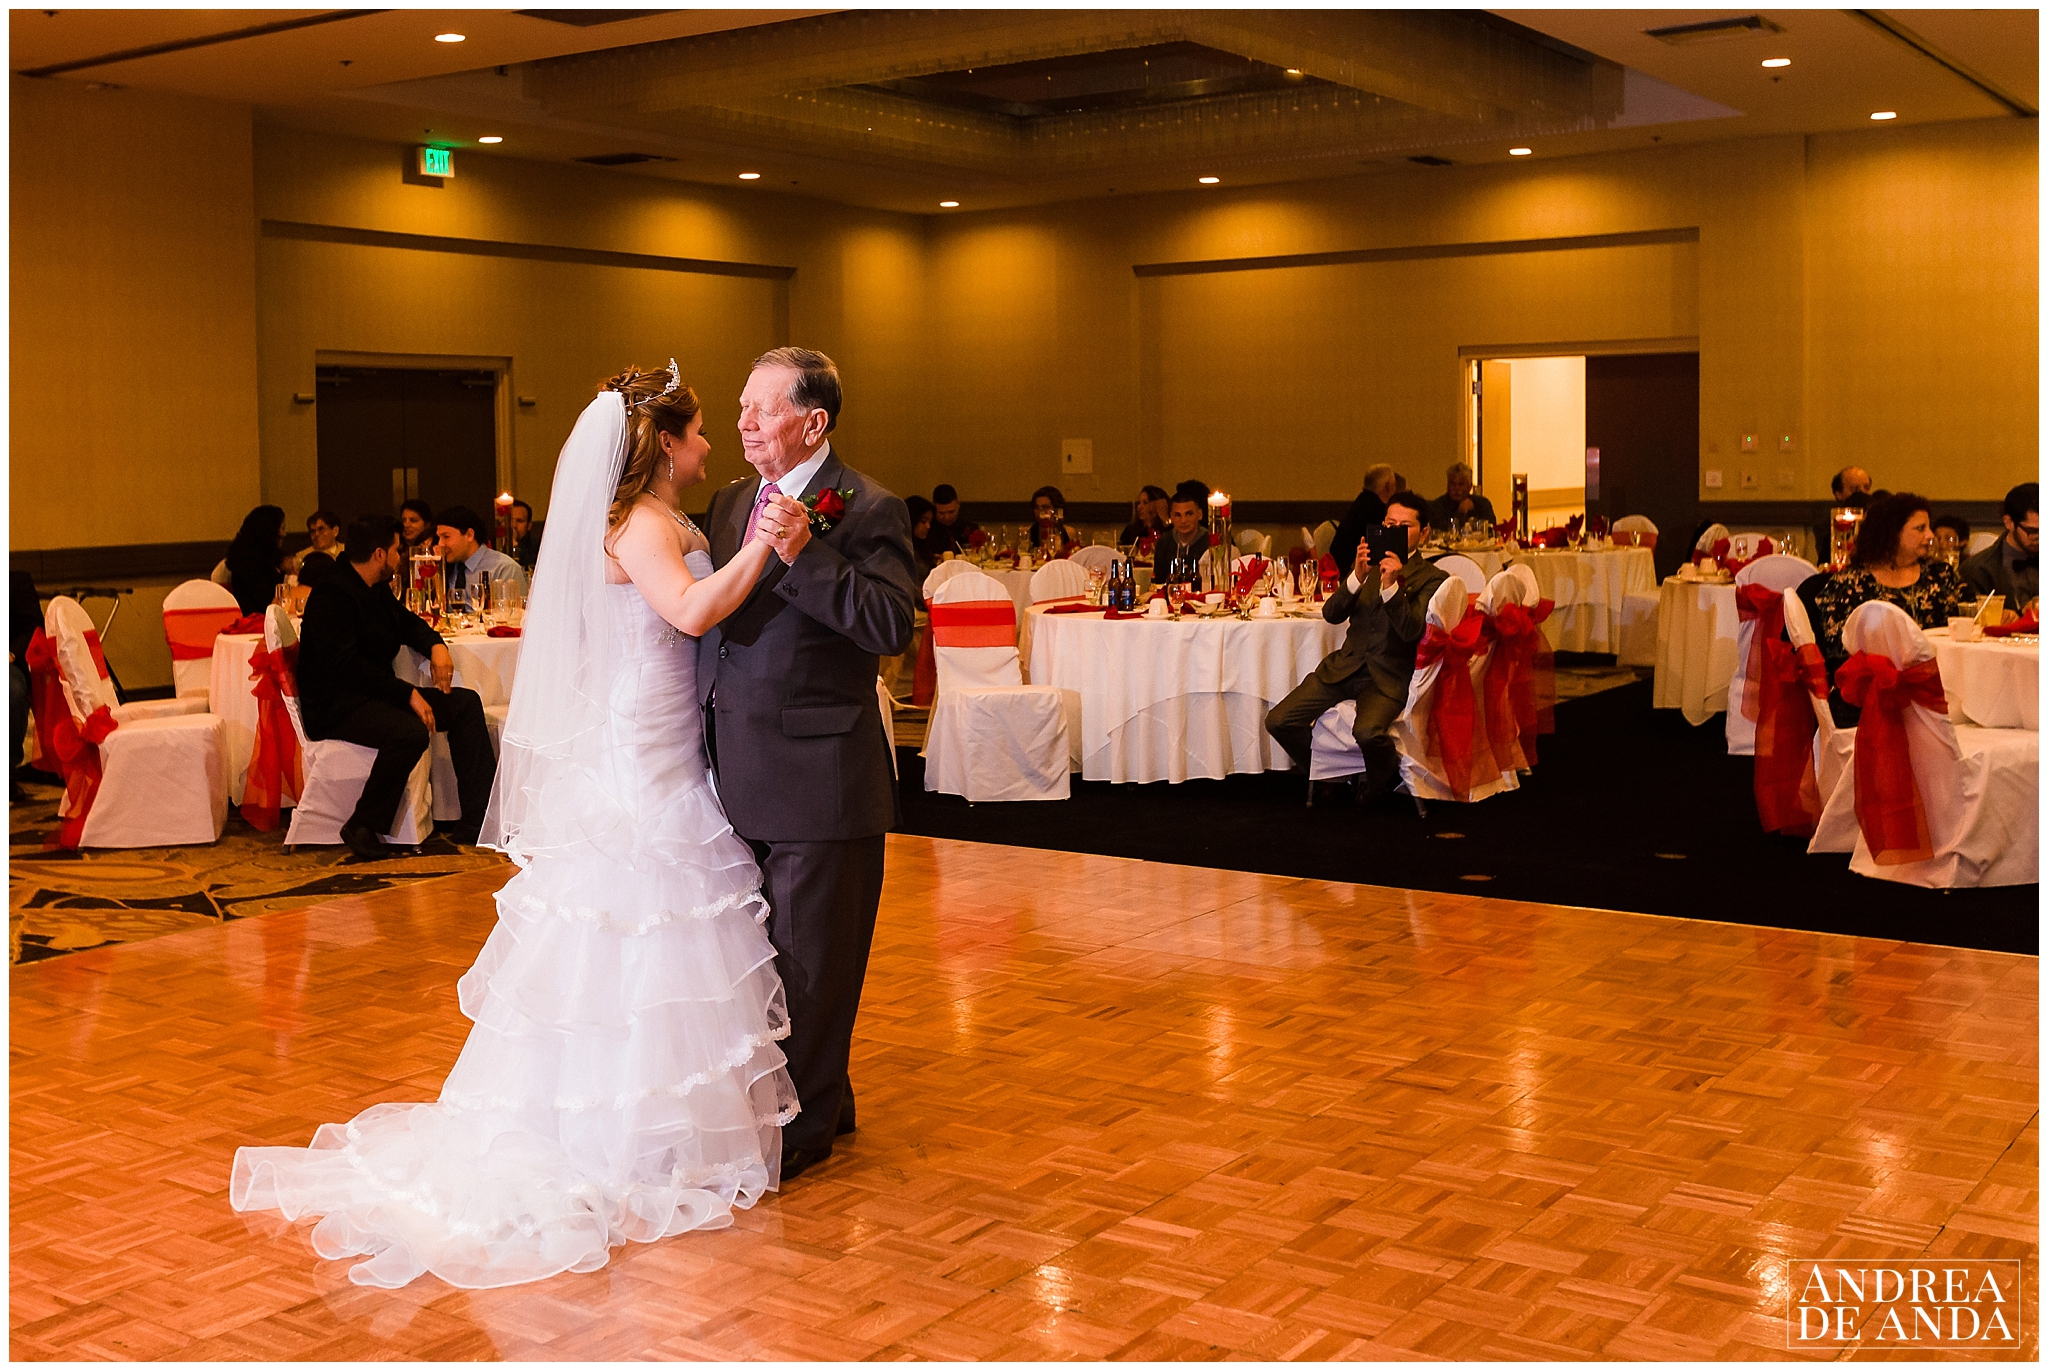 Santa Maria Wedding Photographer_ Andrea de Anda Photography__0035.jpg